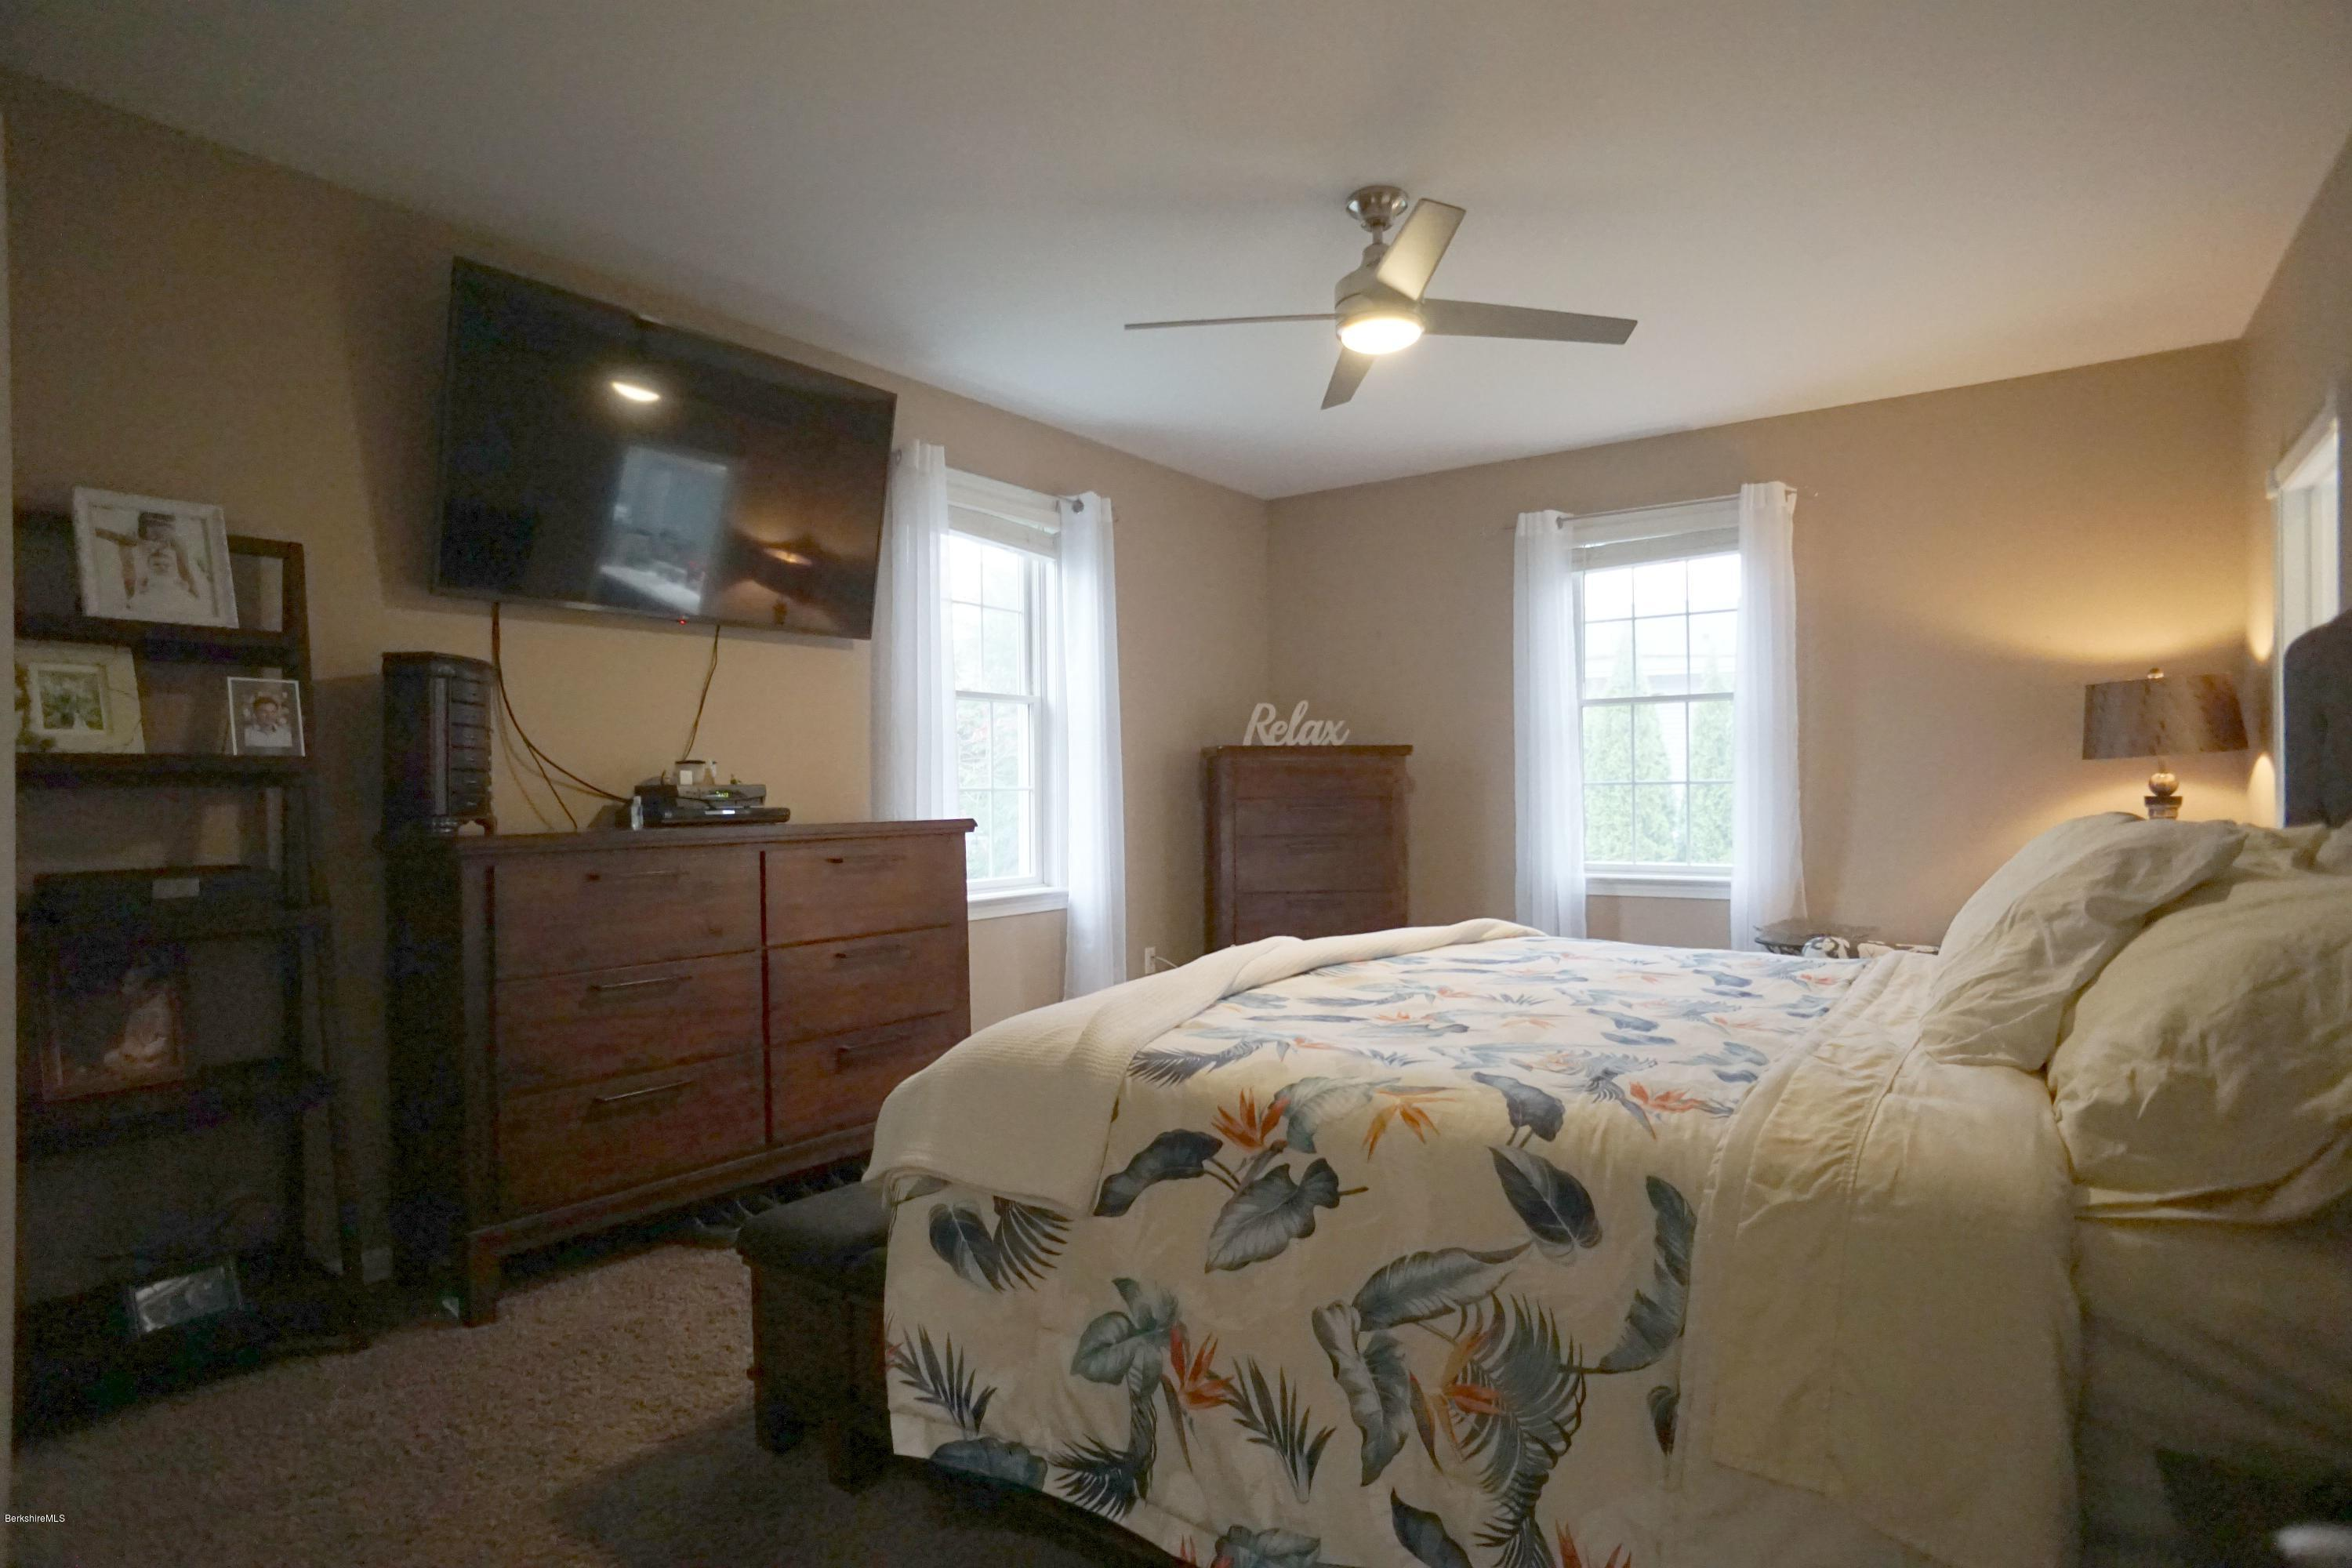 Property located at 208 Karen Dr Pittsfield MA 01201 photo